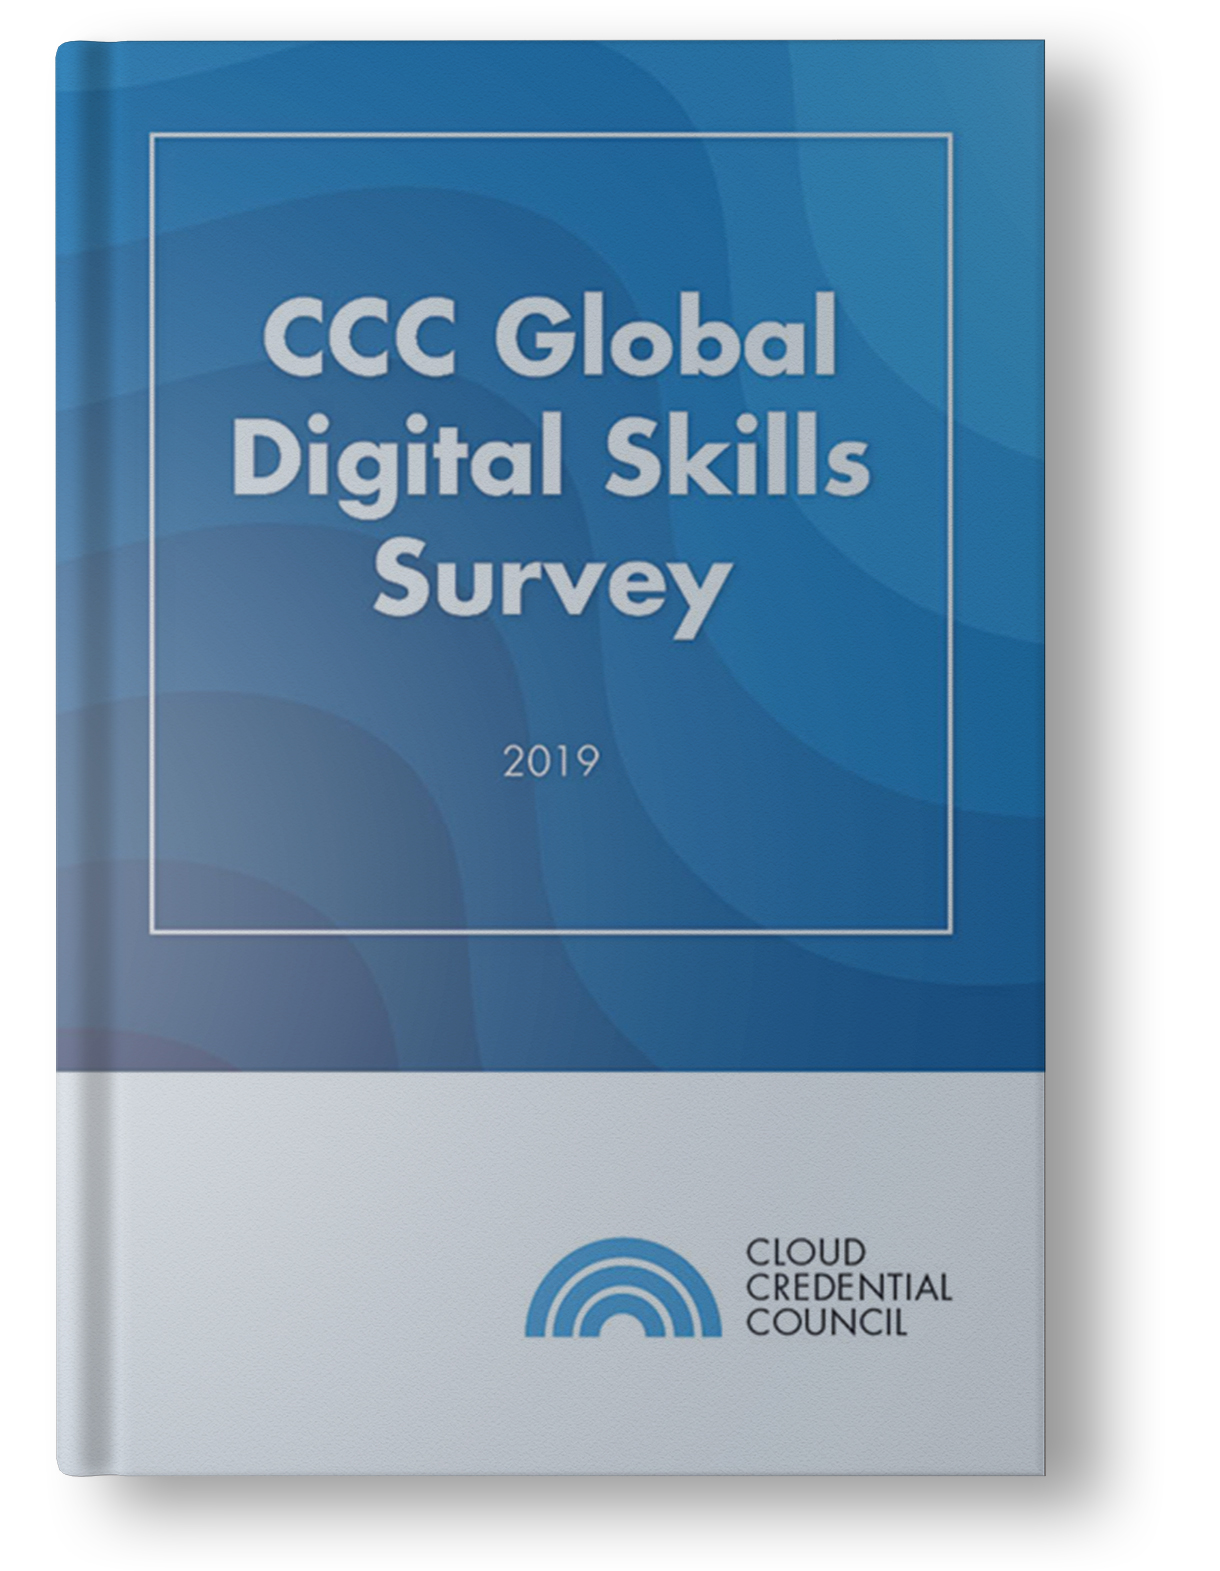 Digital-Skills-Survey-2019-Report-Mockup